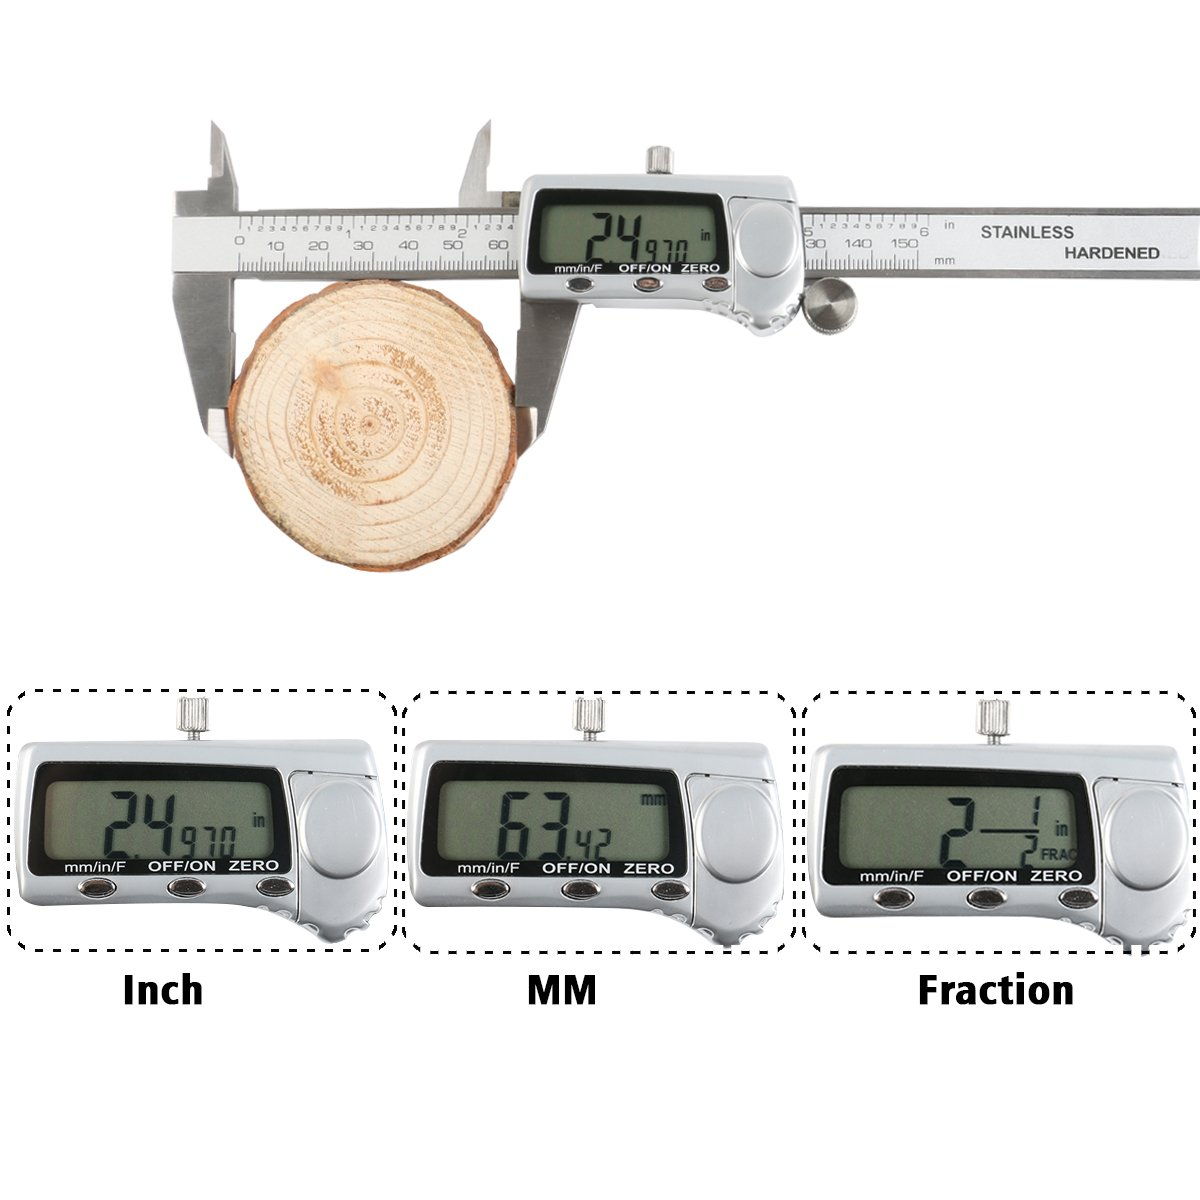 Digital Calipers OKPOW Inch Metric Fractions Conversion Stainless Steel Vernier Gauge 0-6 Inch/150mm with LCD Display Measuring Ruler